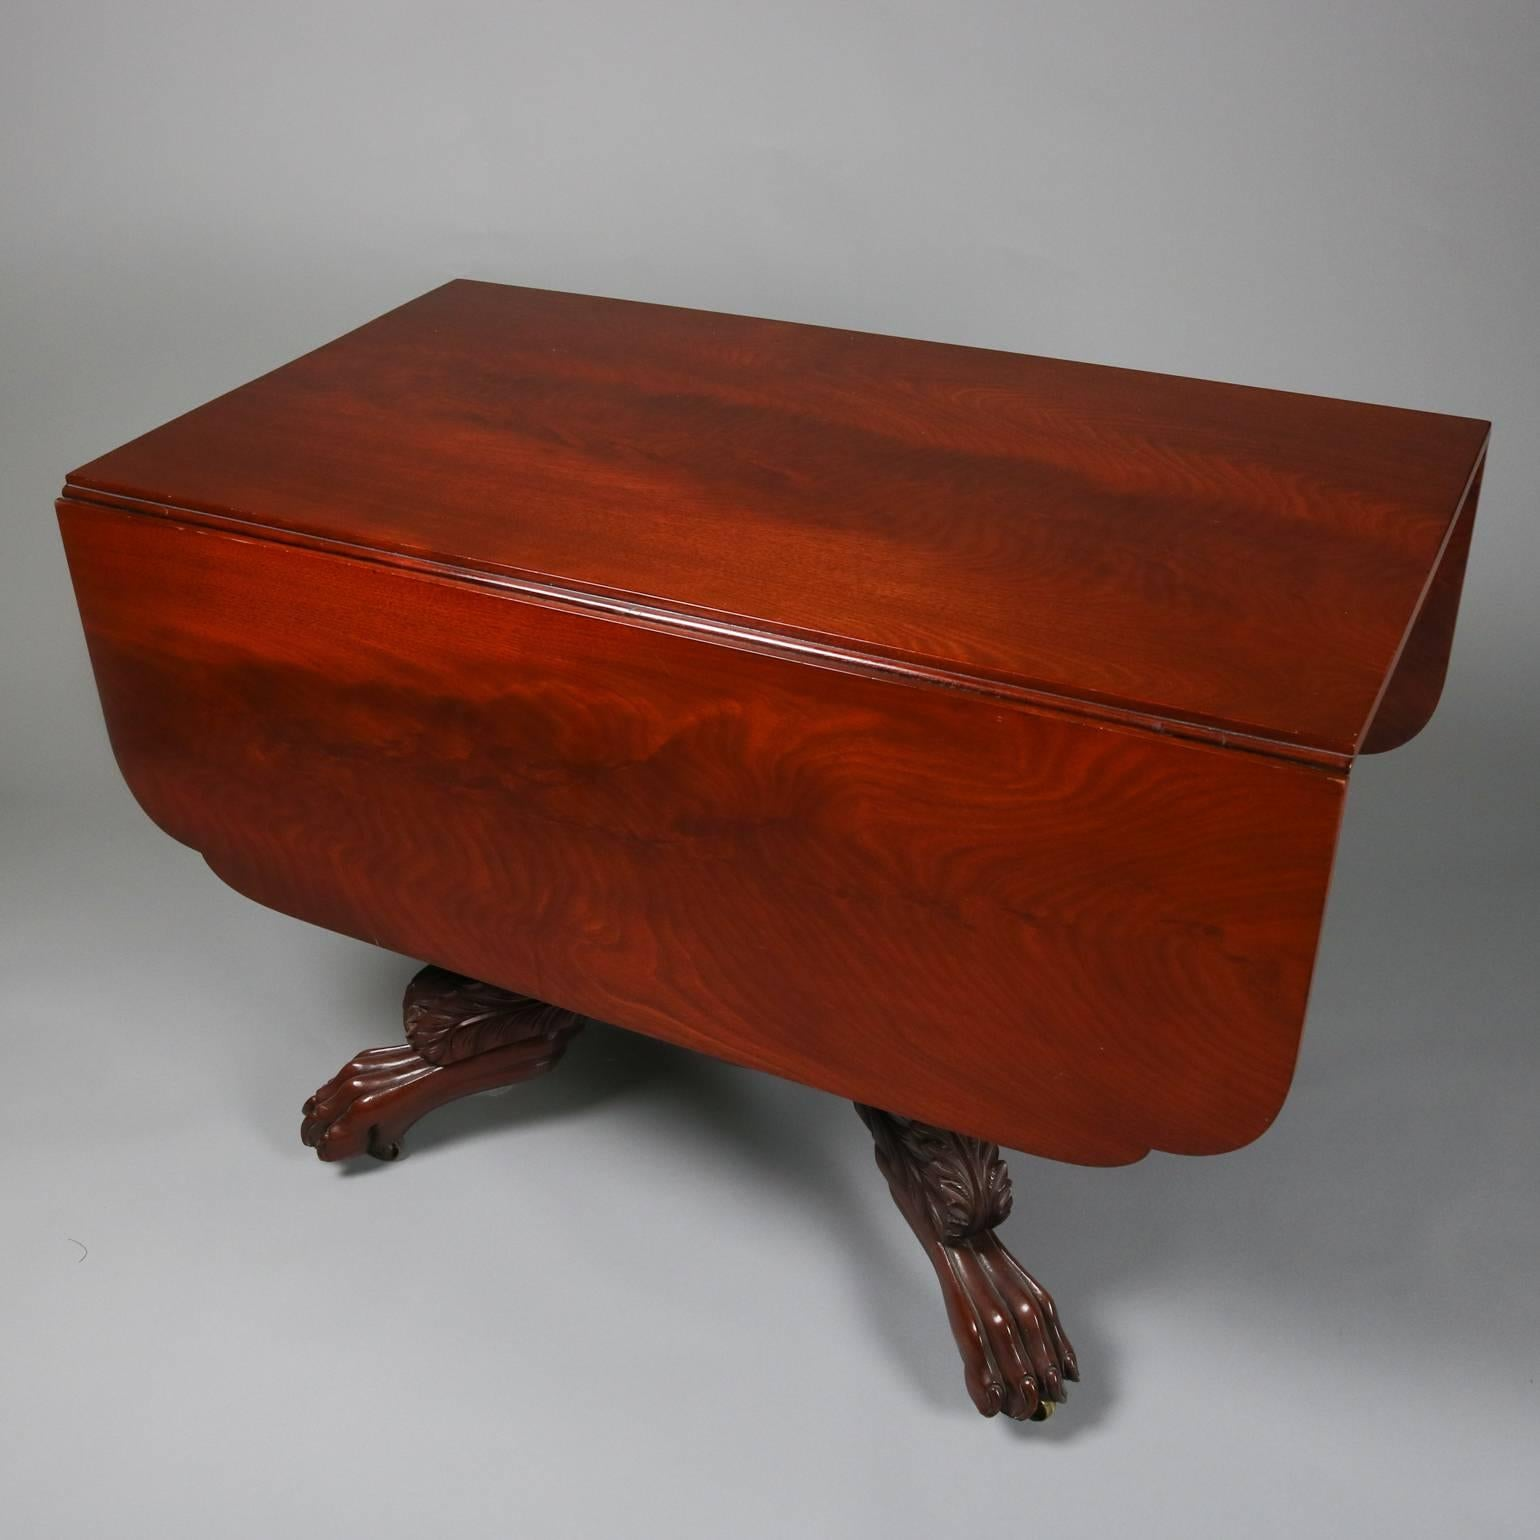 Antique Carved American Empire Flame Mahogany Pedestal Drop Leaf Table In  Good Condition For Sale